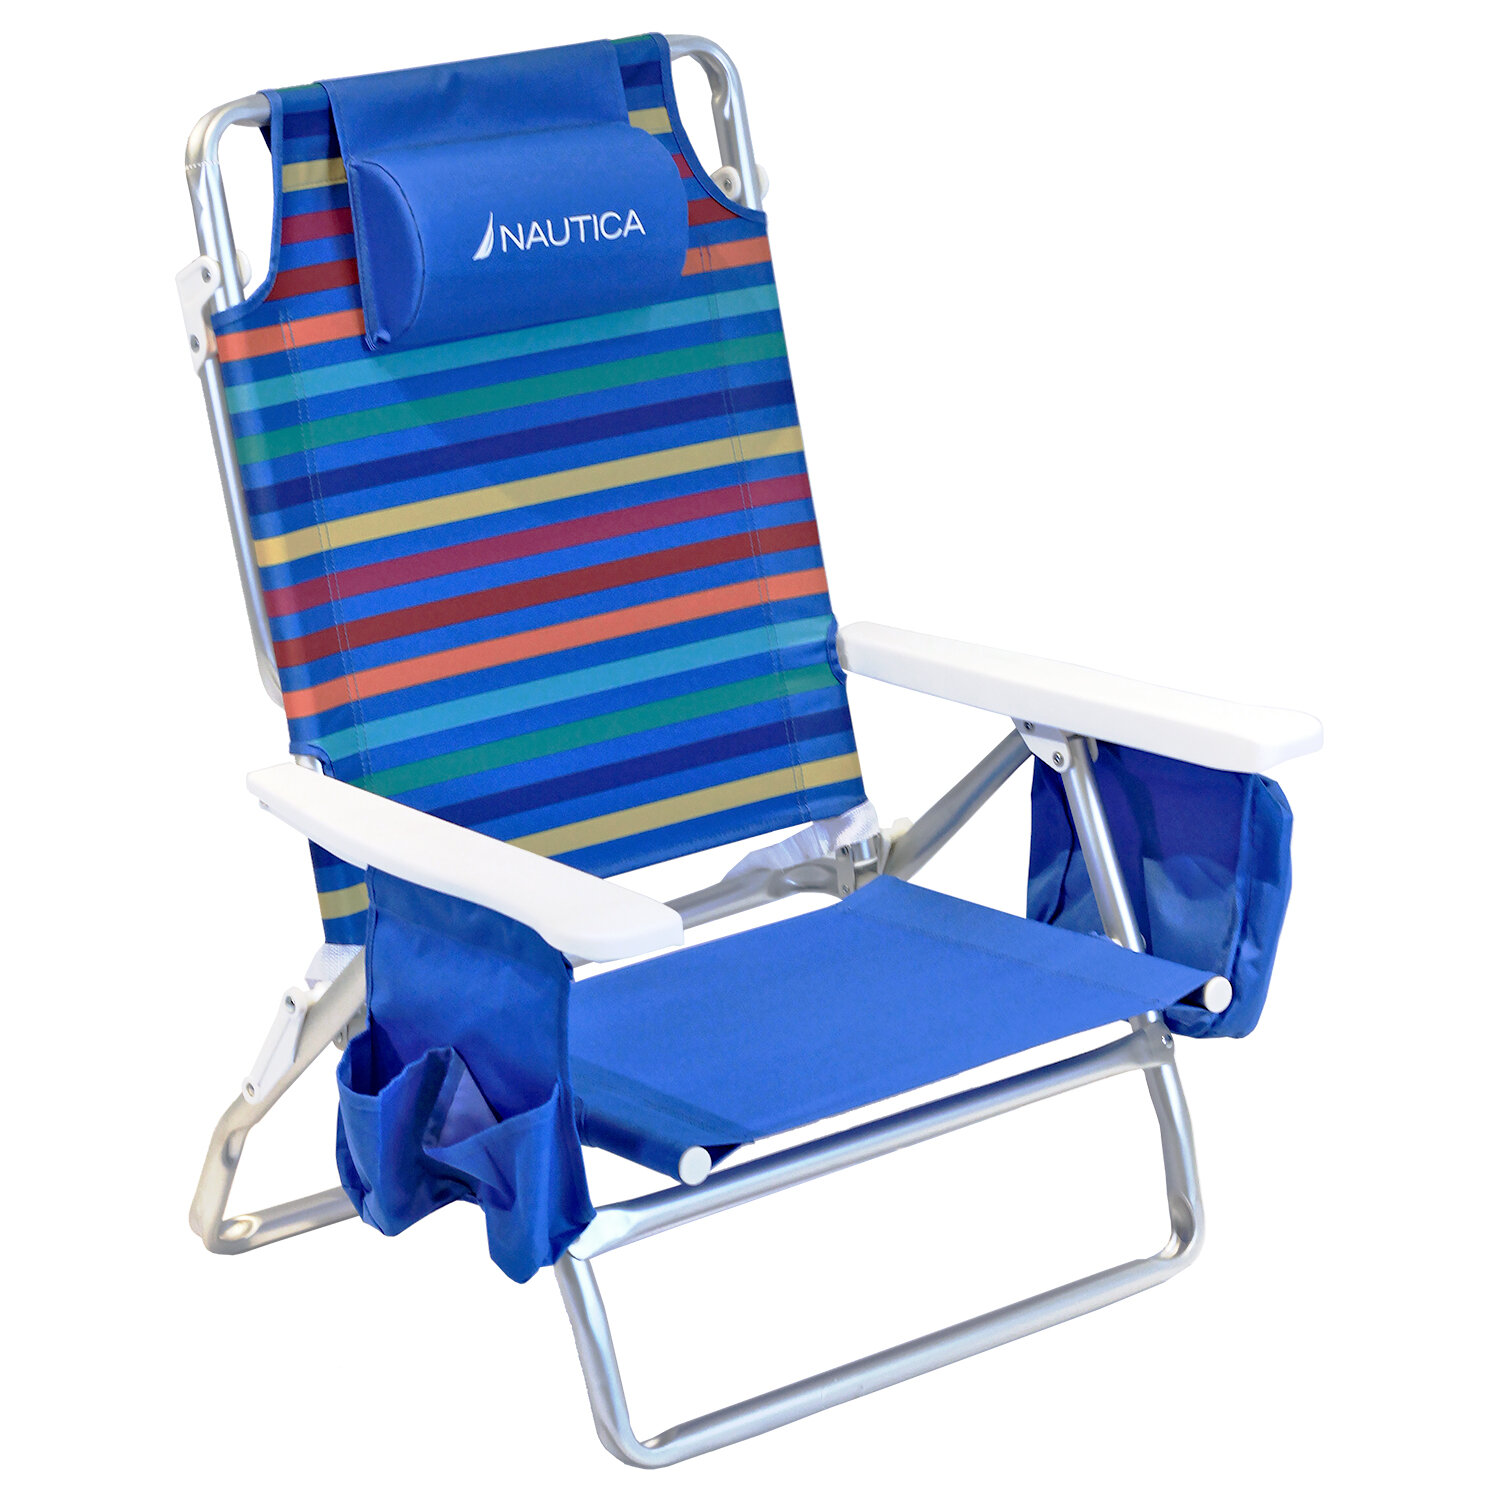 Nautica 5 Position Reclining/Folding Beach Chair U0026 Reviews | Wayfair